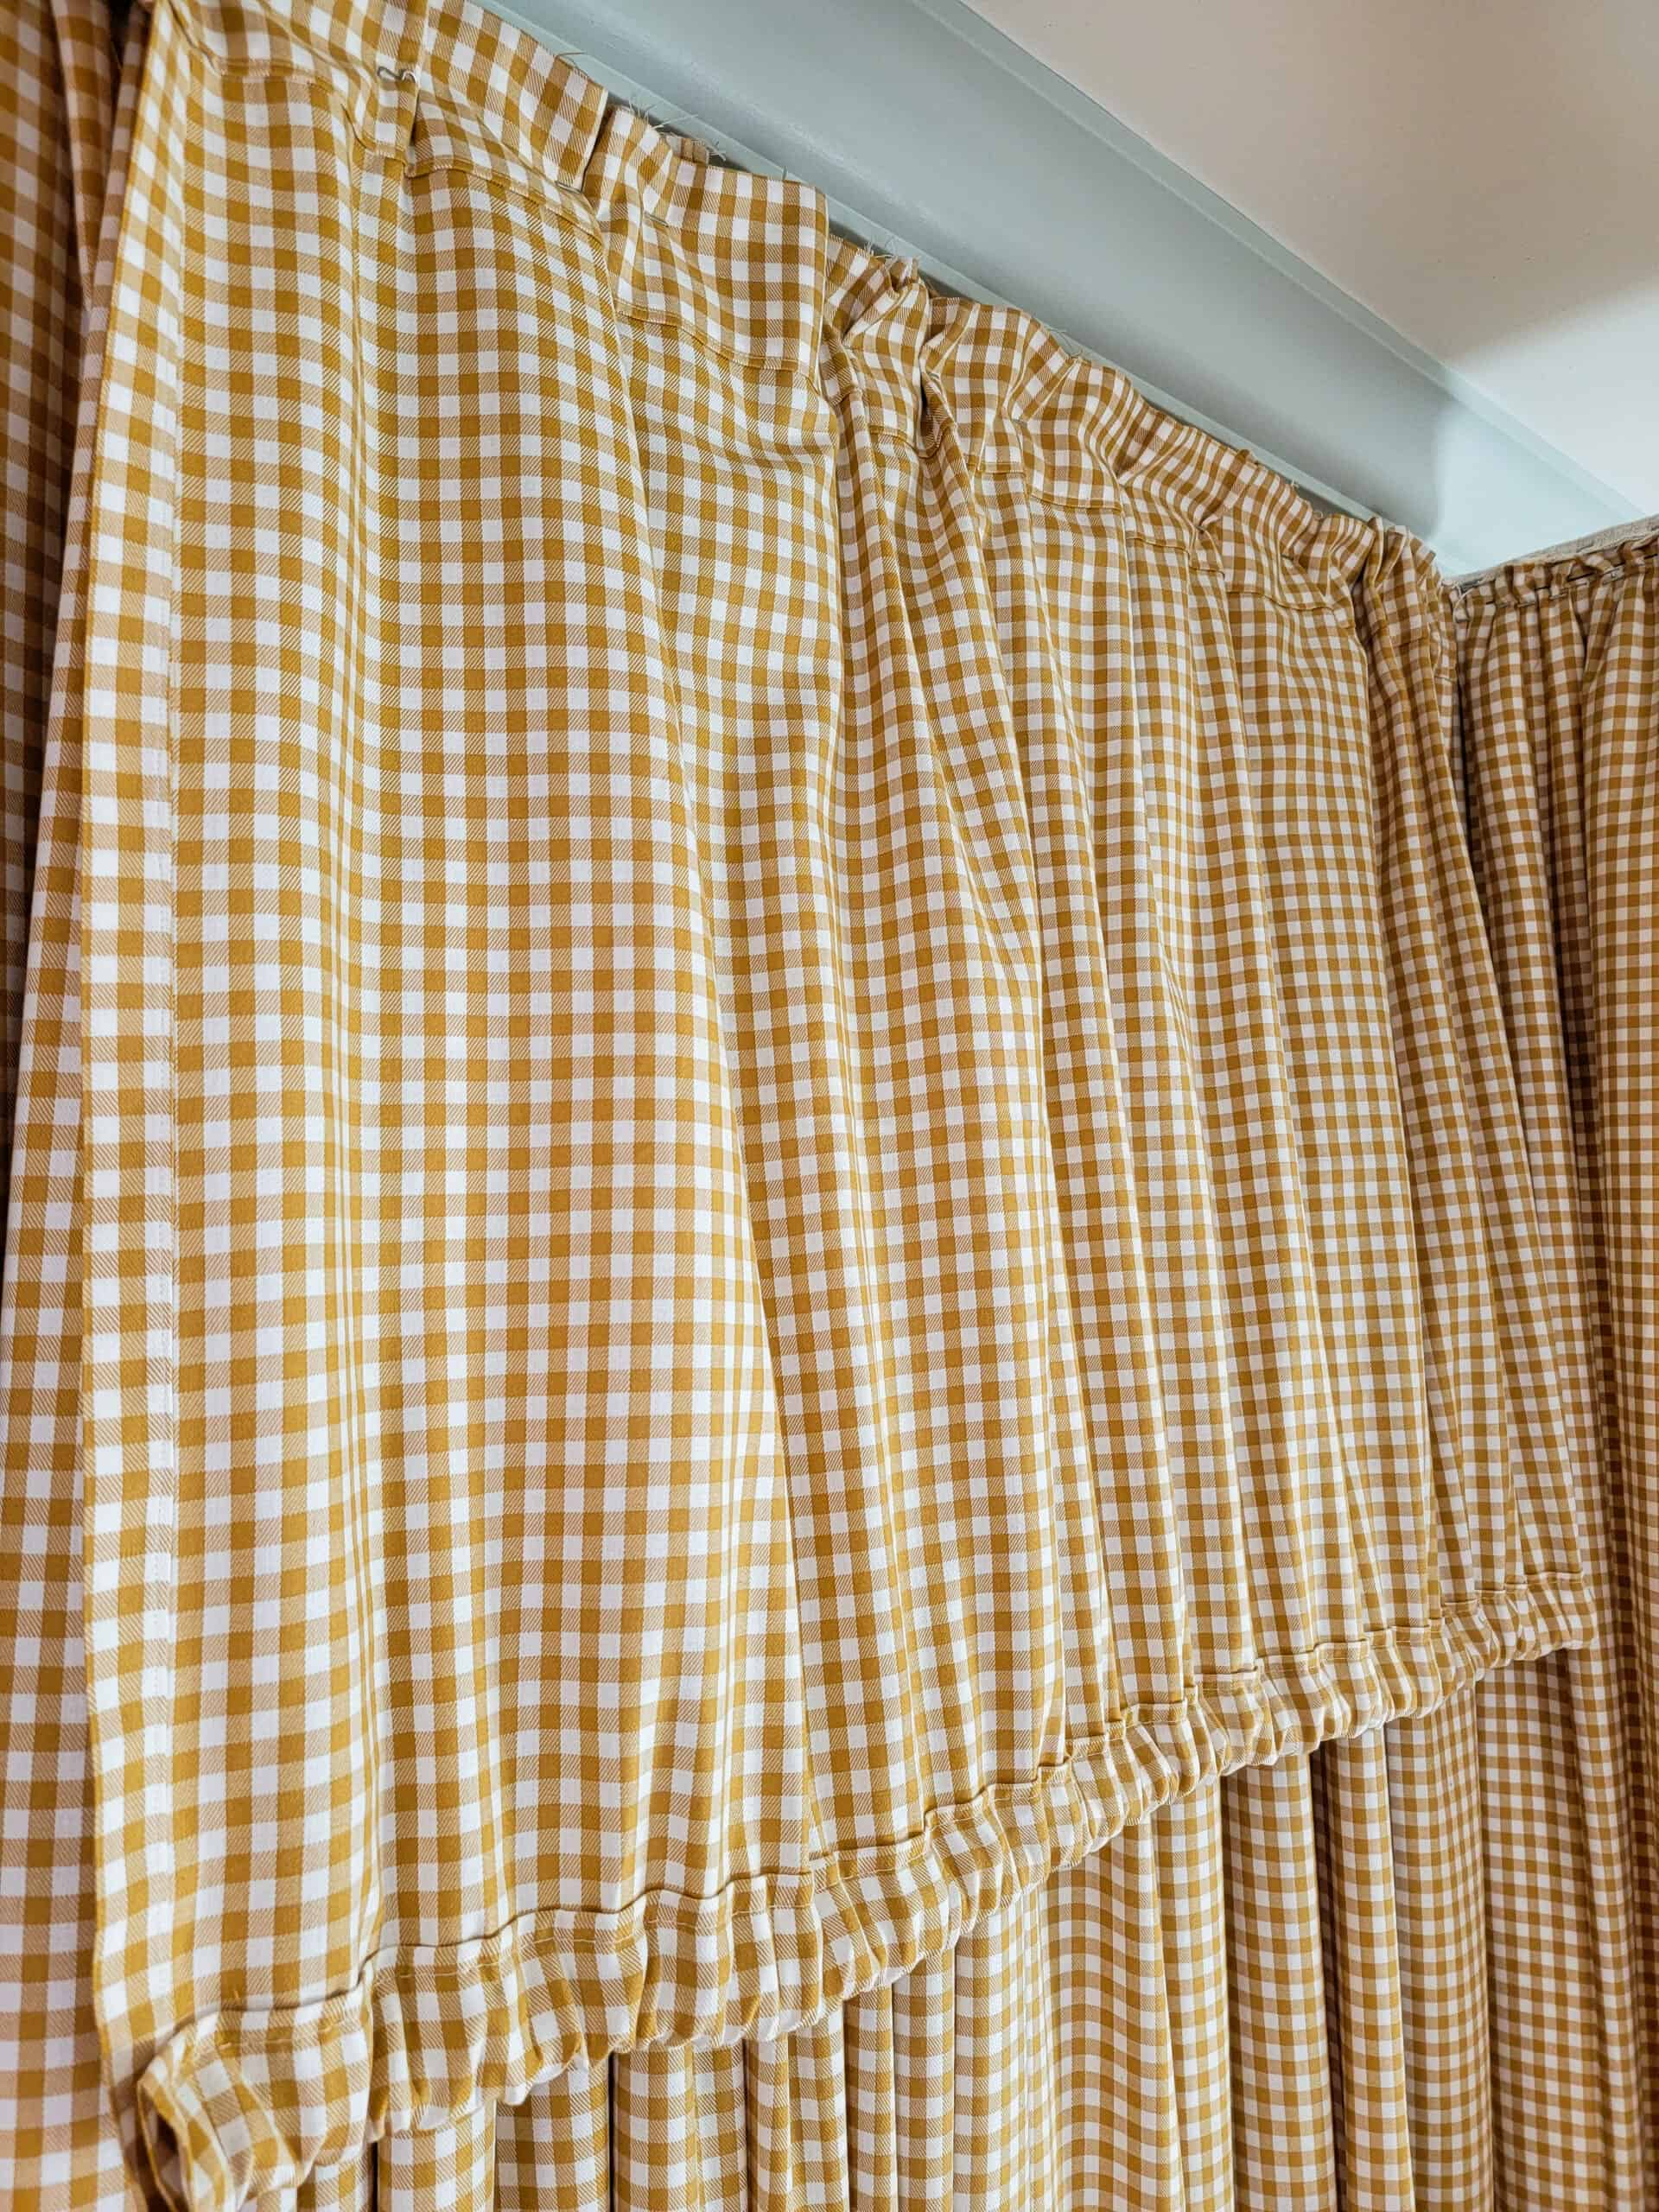 yellow gingham fabric gathered onto a wooden canopy frame